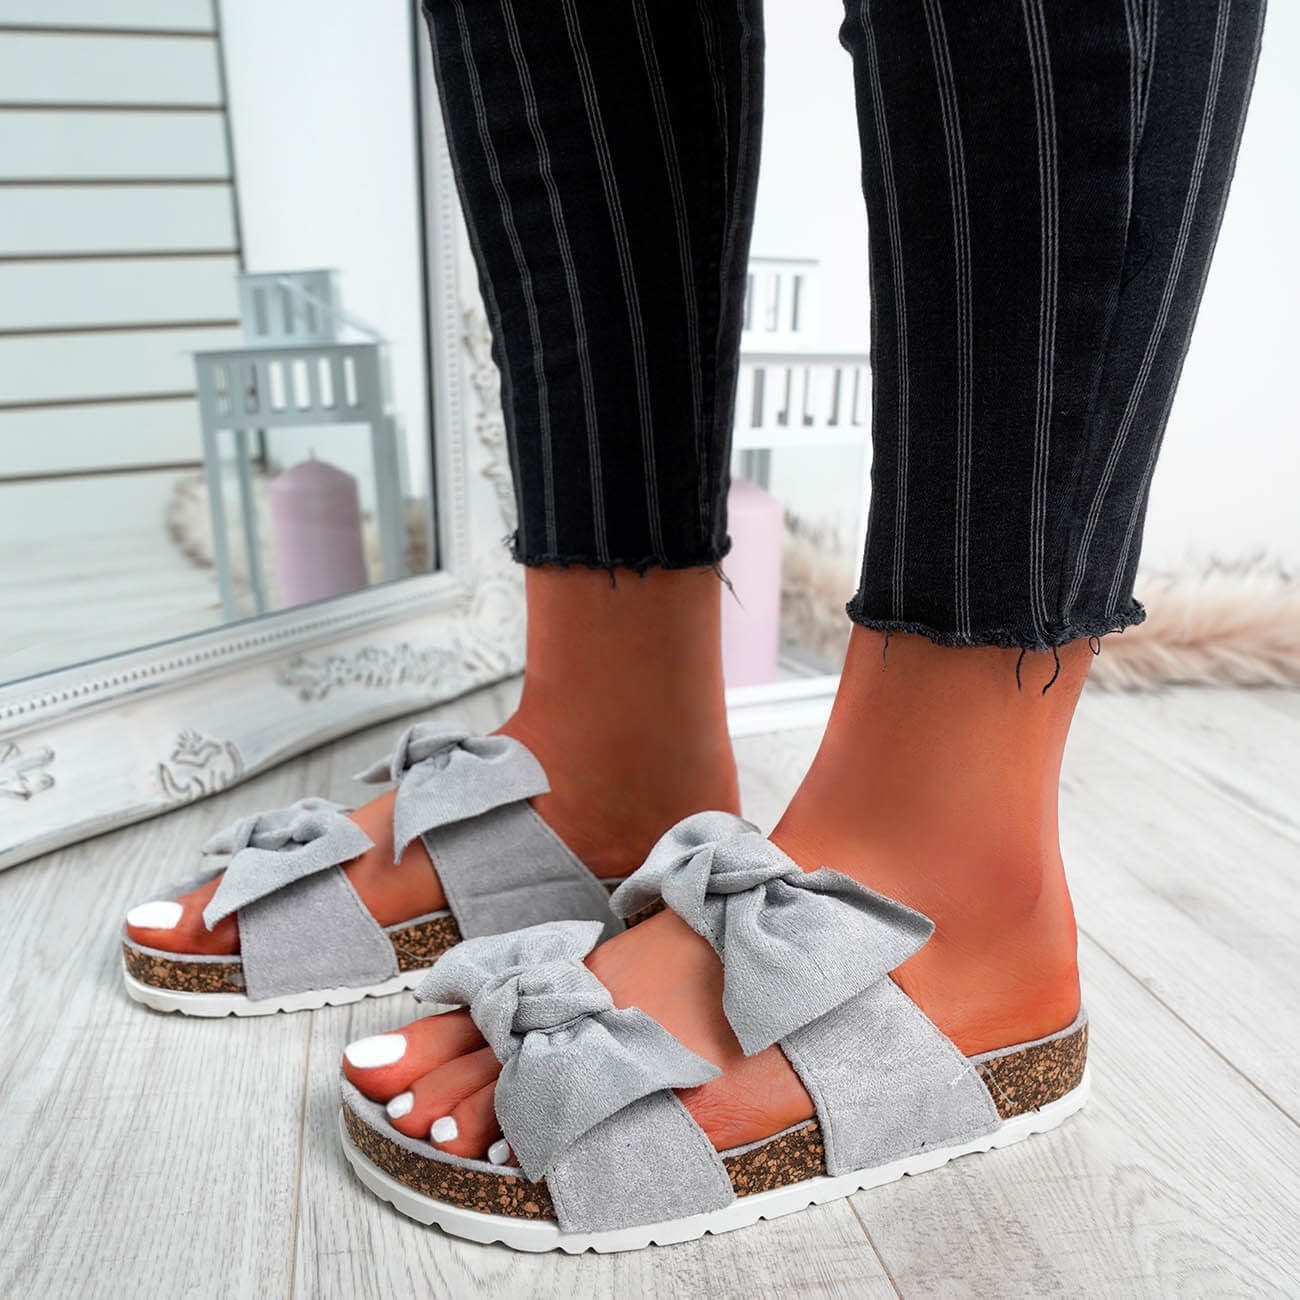 WOMENS-LADIES-PEEP-TOE-SLIP-ON-DOUBLE-BOW-FLAT-SANDALS-PARTY-CLUB-SUMMER-SHOES thumbnail 35